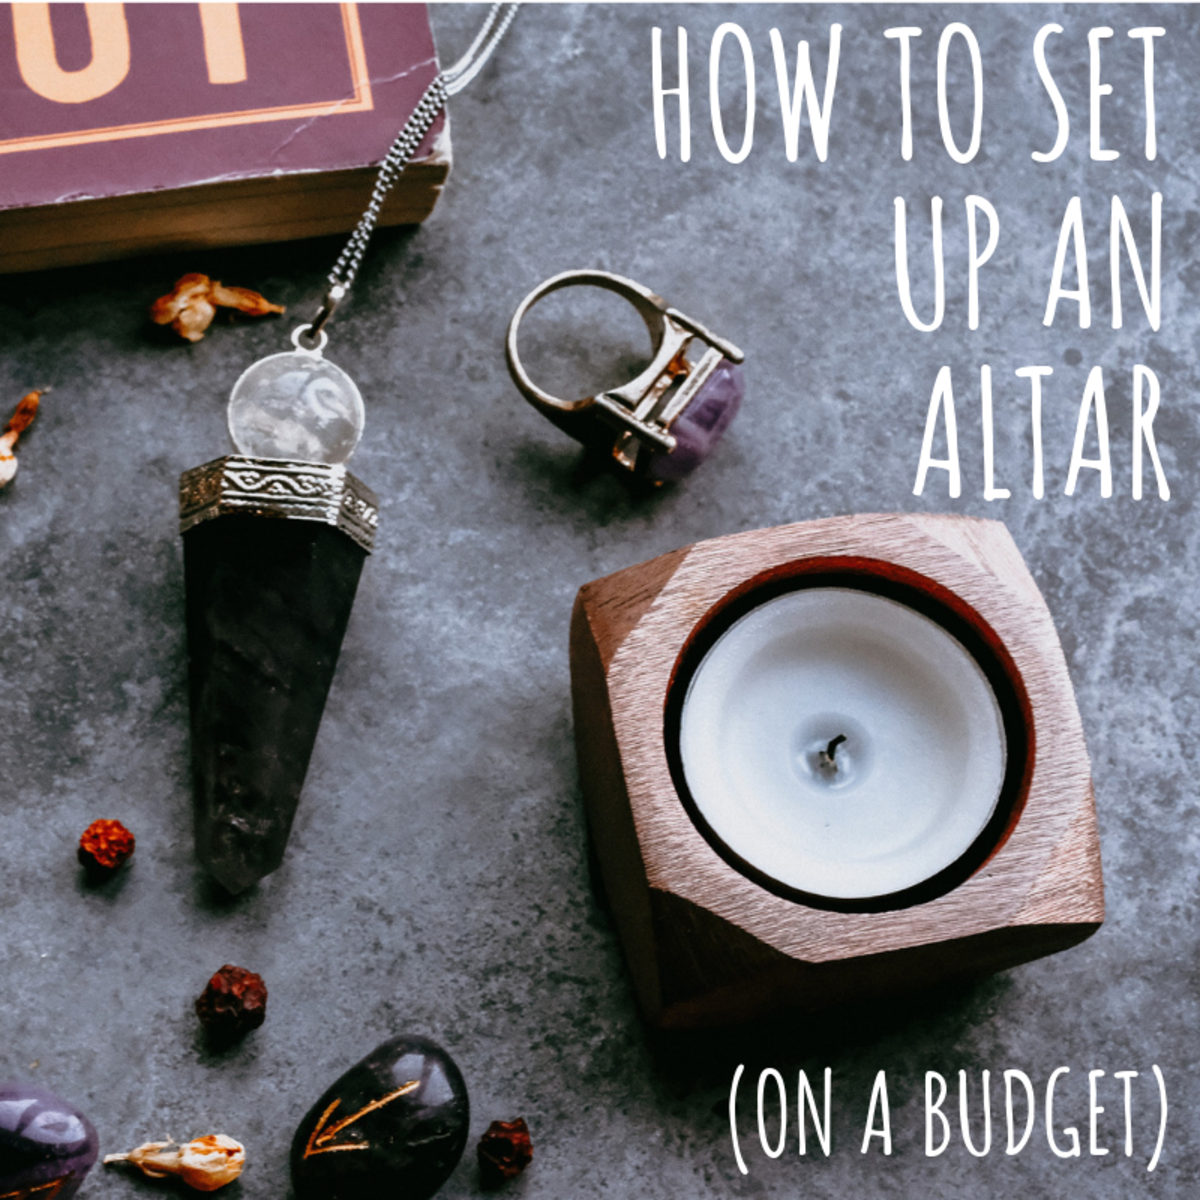 Wiccan Altar Set Up For Beginner Wiccans or Wiccans on a Budget